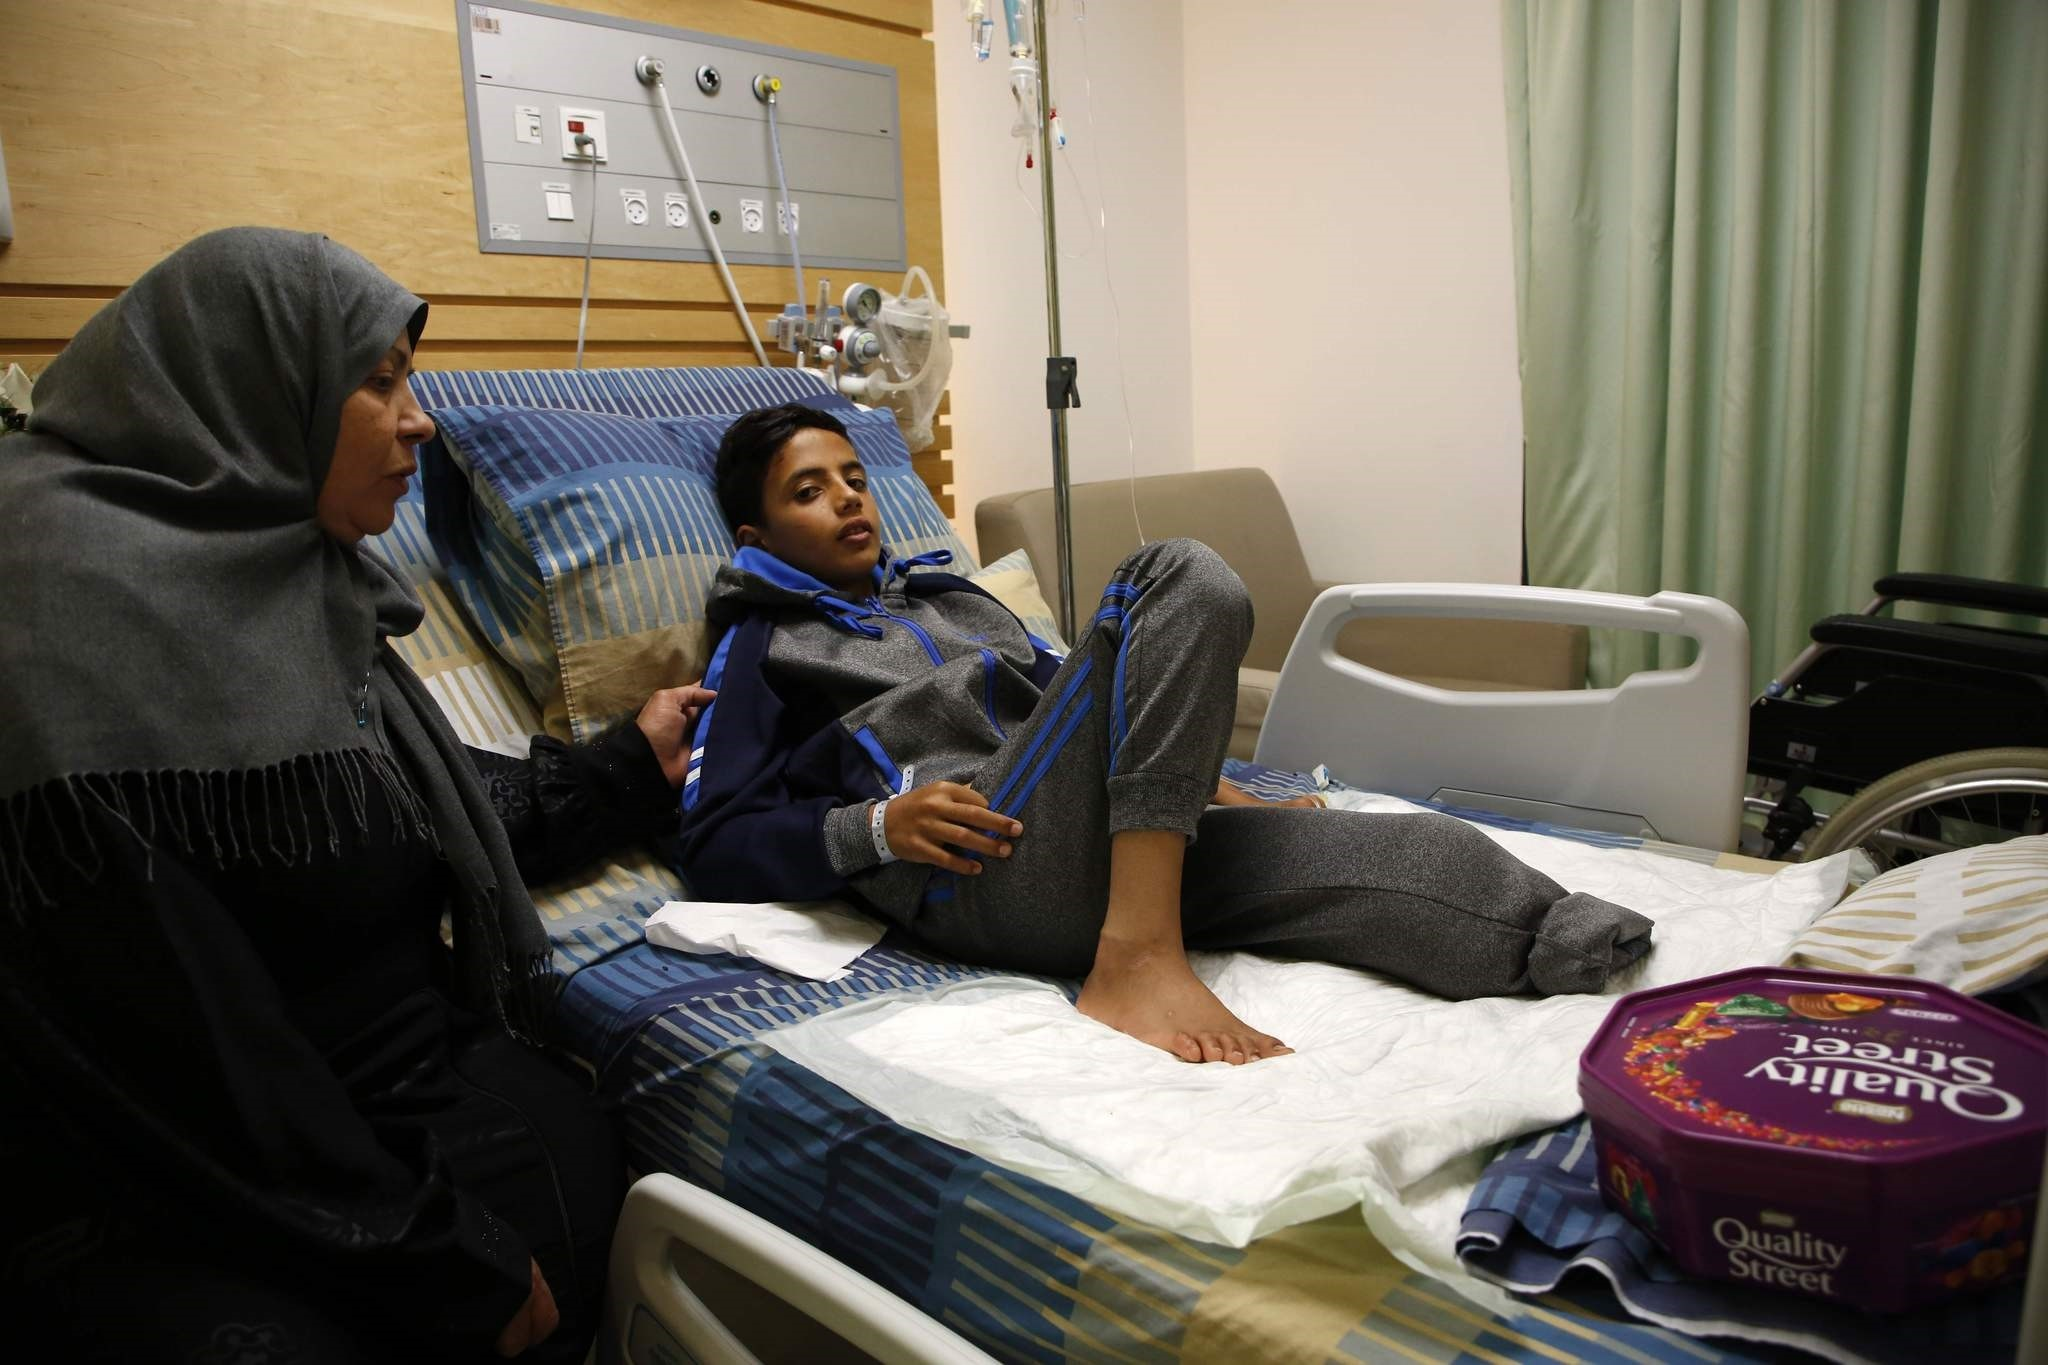 Abdel Rahman Nawfal, 12, sits next to his grandmother in a hospital in the West Bank city of Ramallah on April 23, 2018. (AFP Photo)